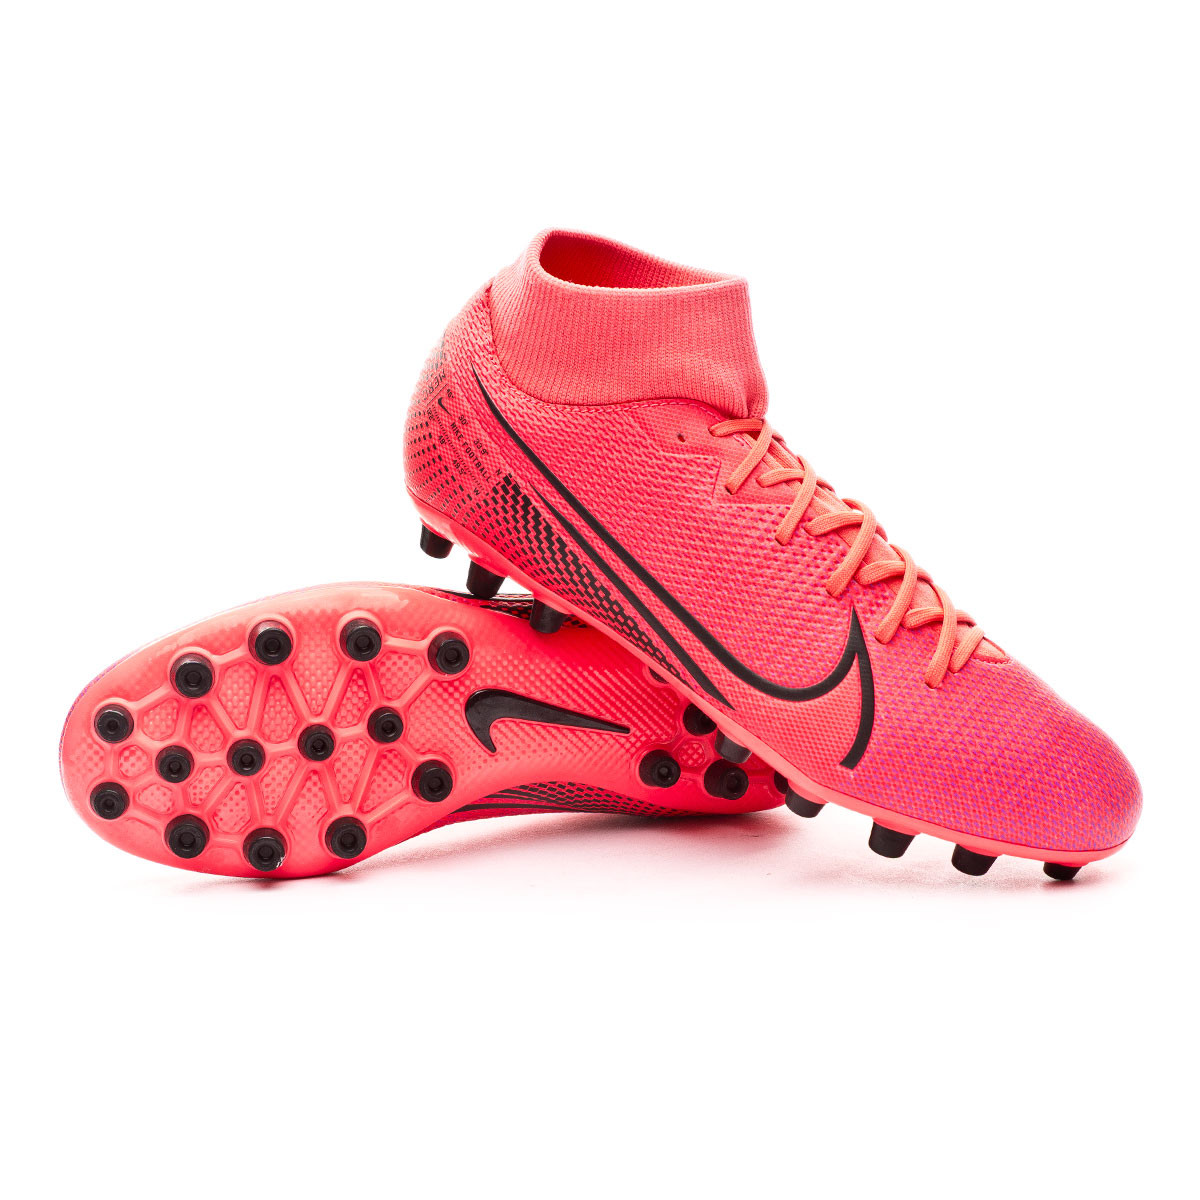 Chaussure de foot Nike Mercurial Superfly VII Academy AG